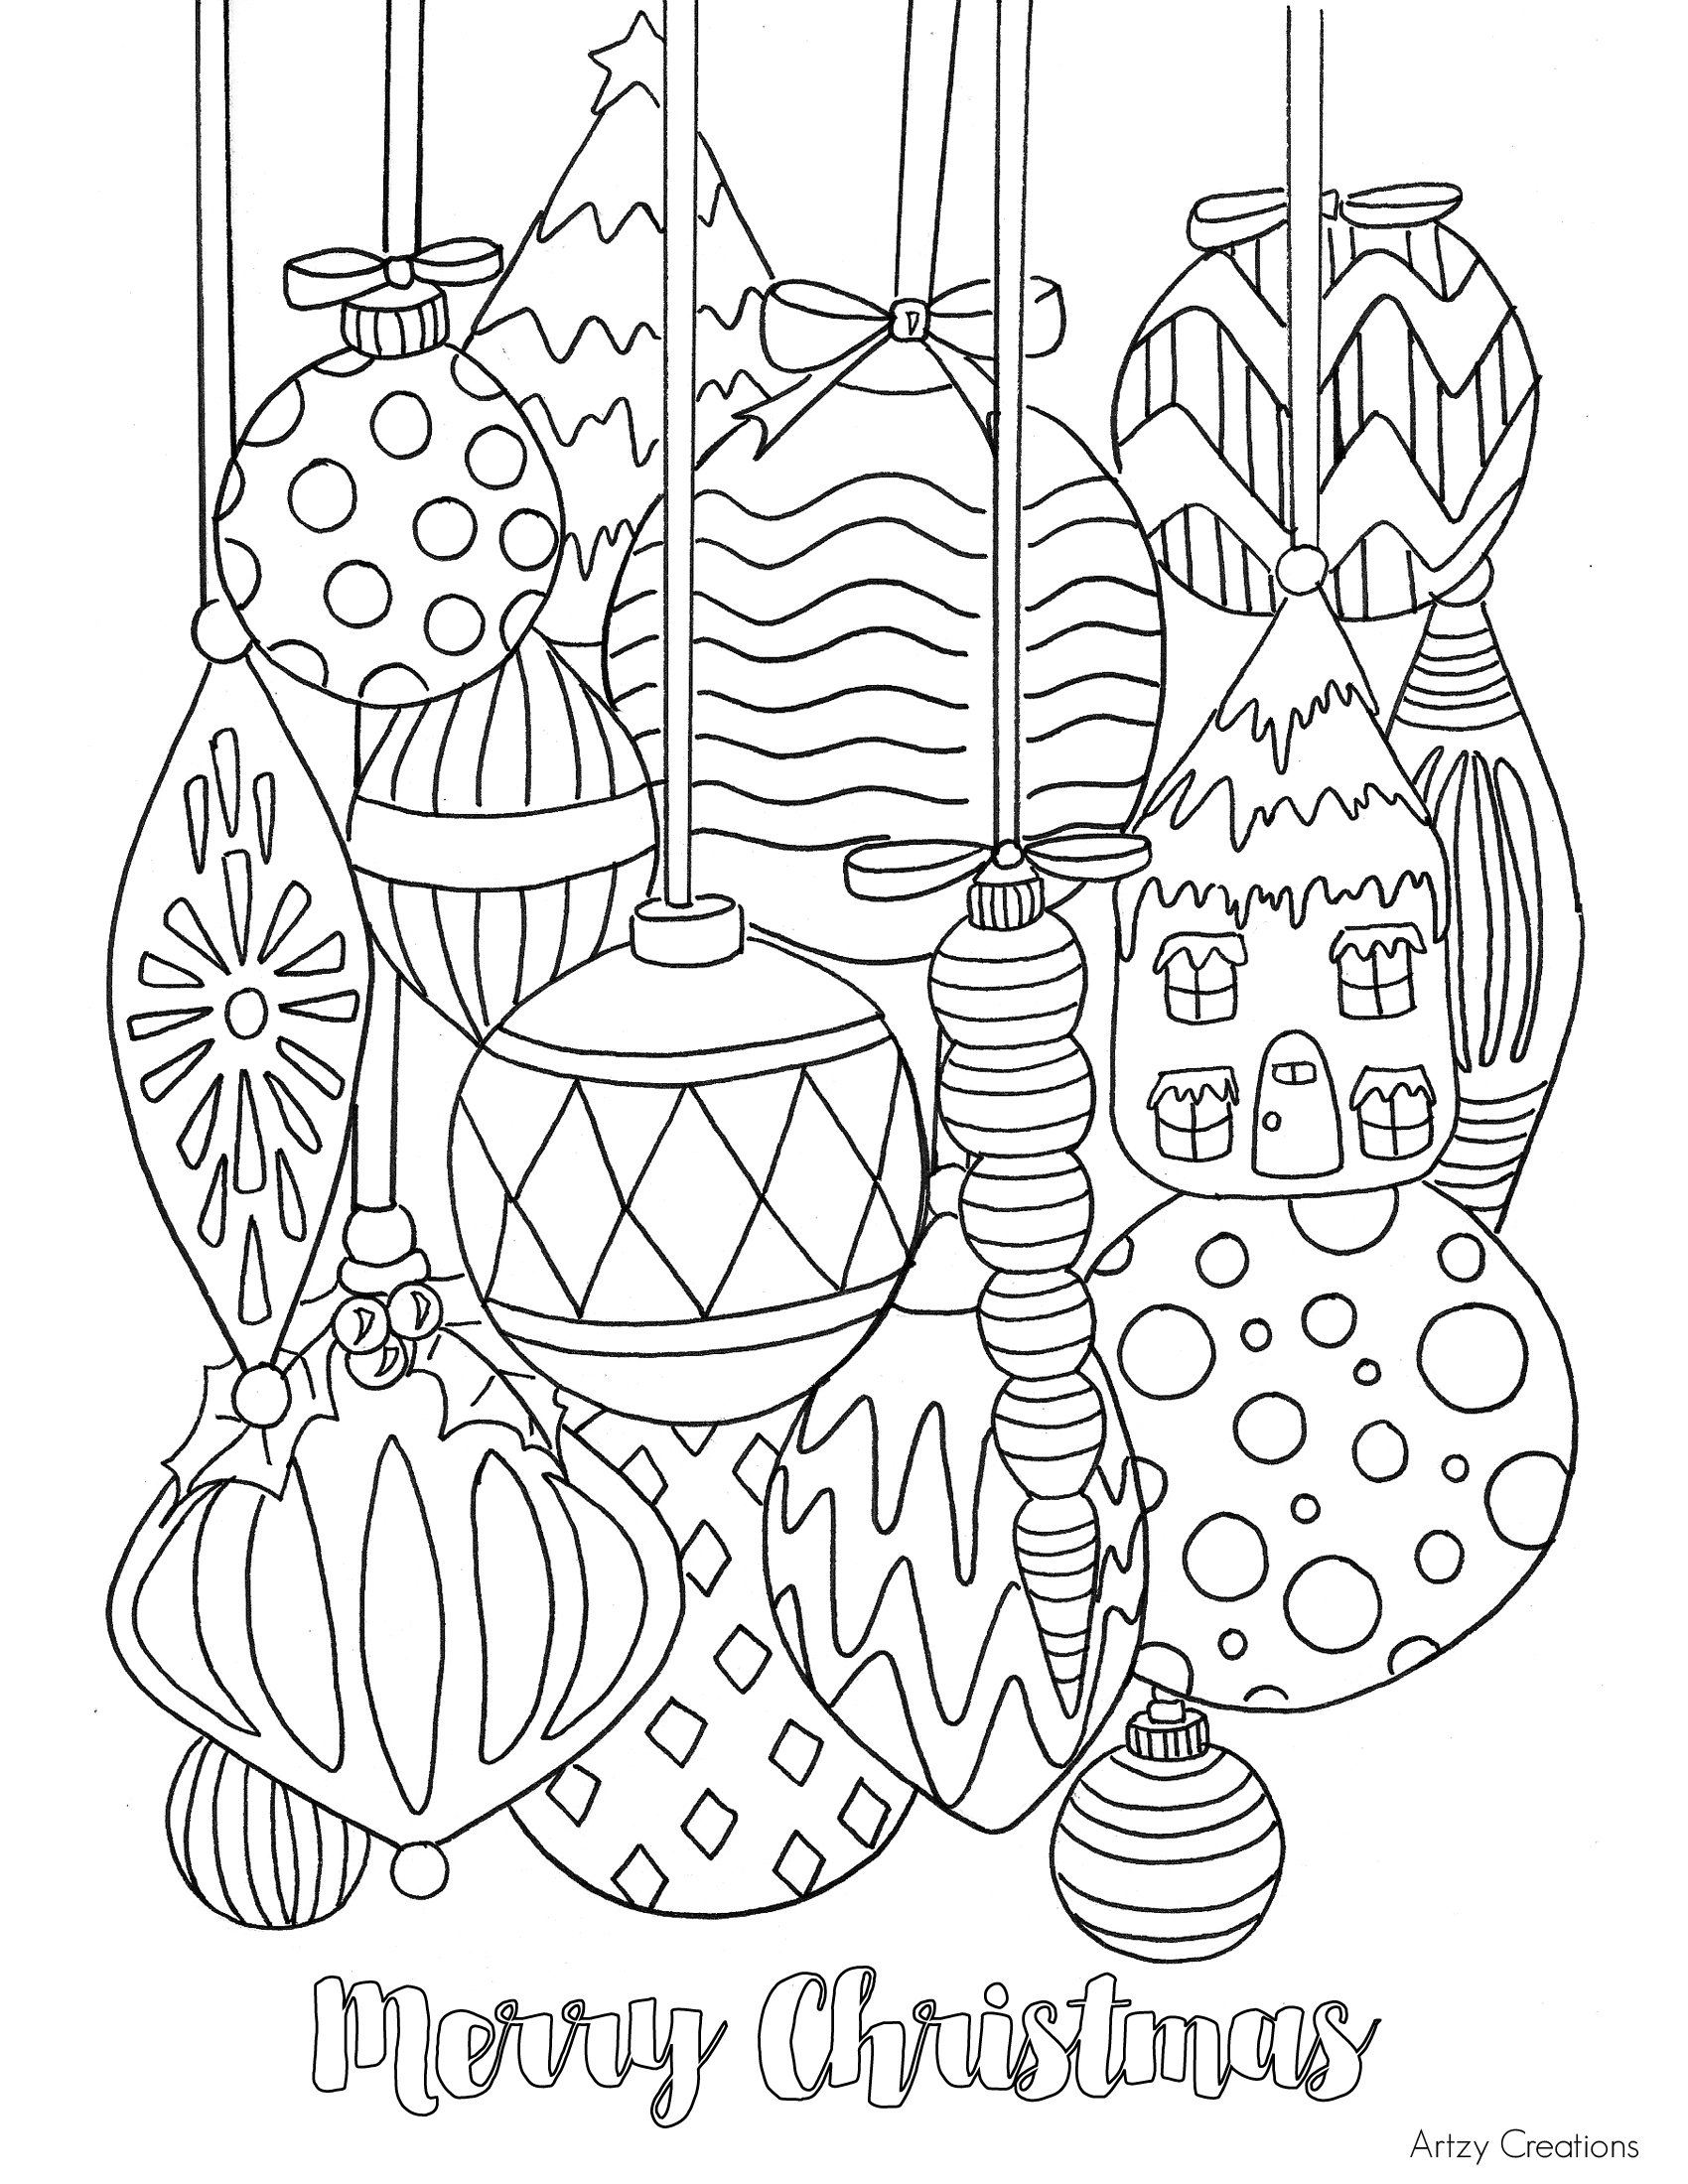 Christmas Coloring Images Free With Pages To Print Books